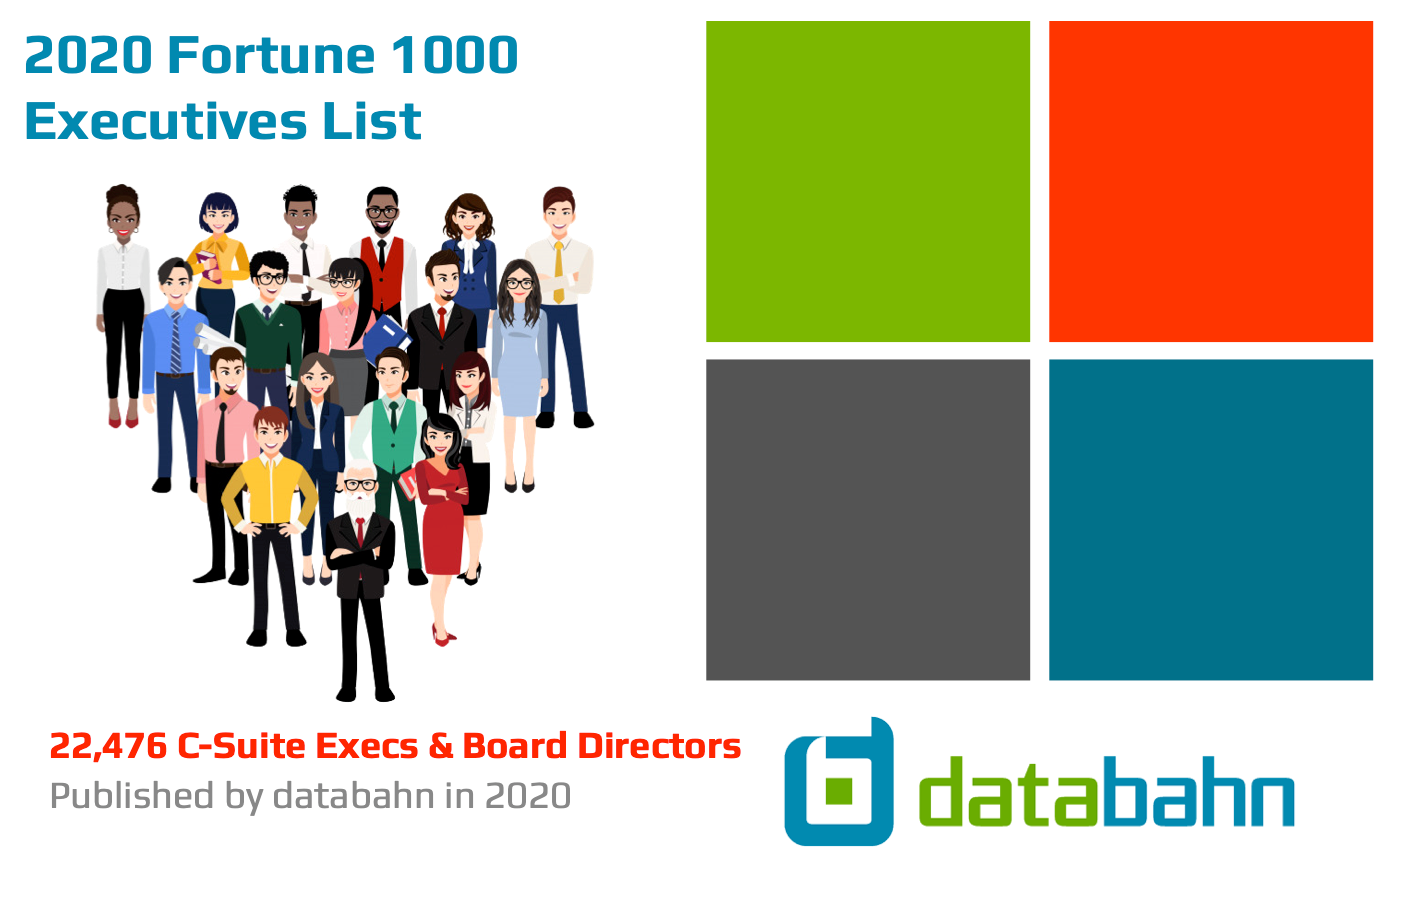 2020 Fortune 1000 Executive Contact List